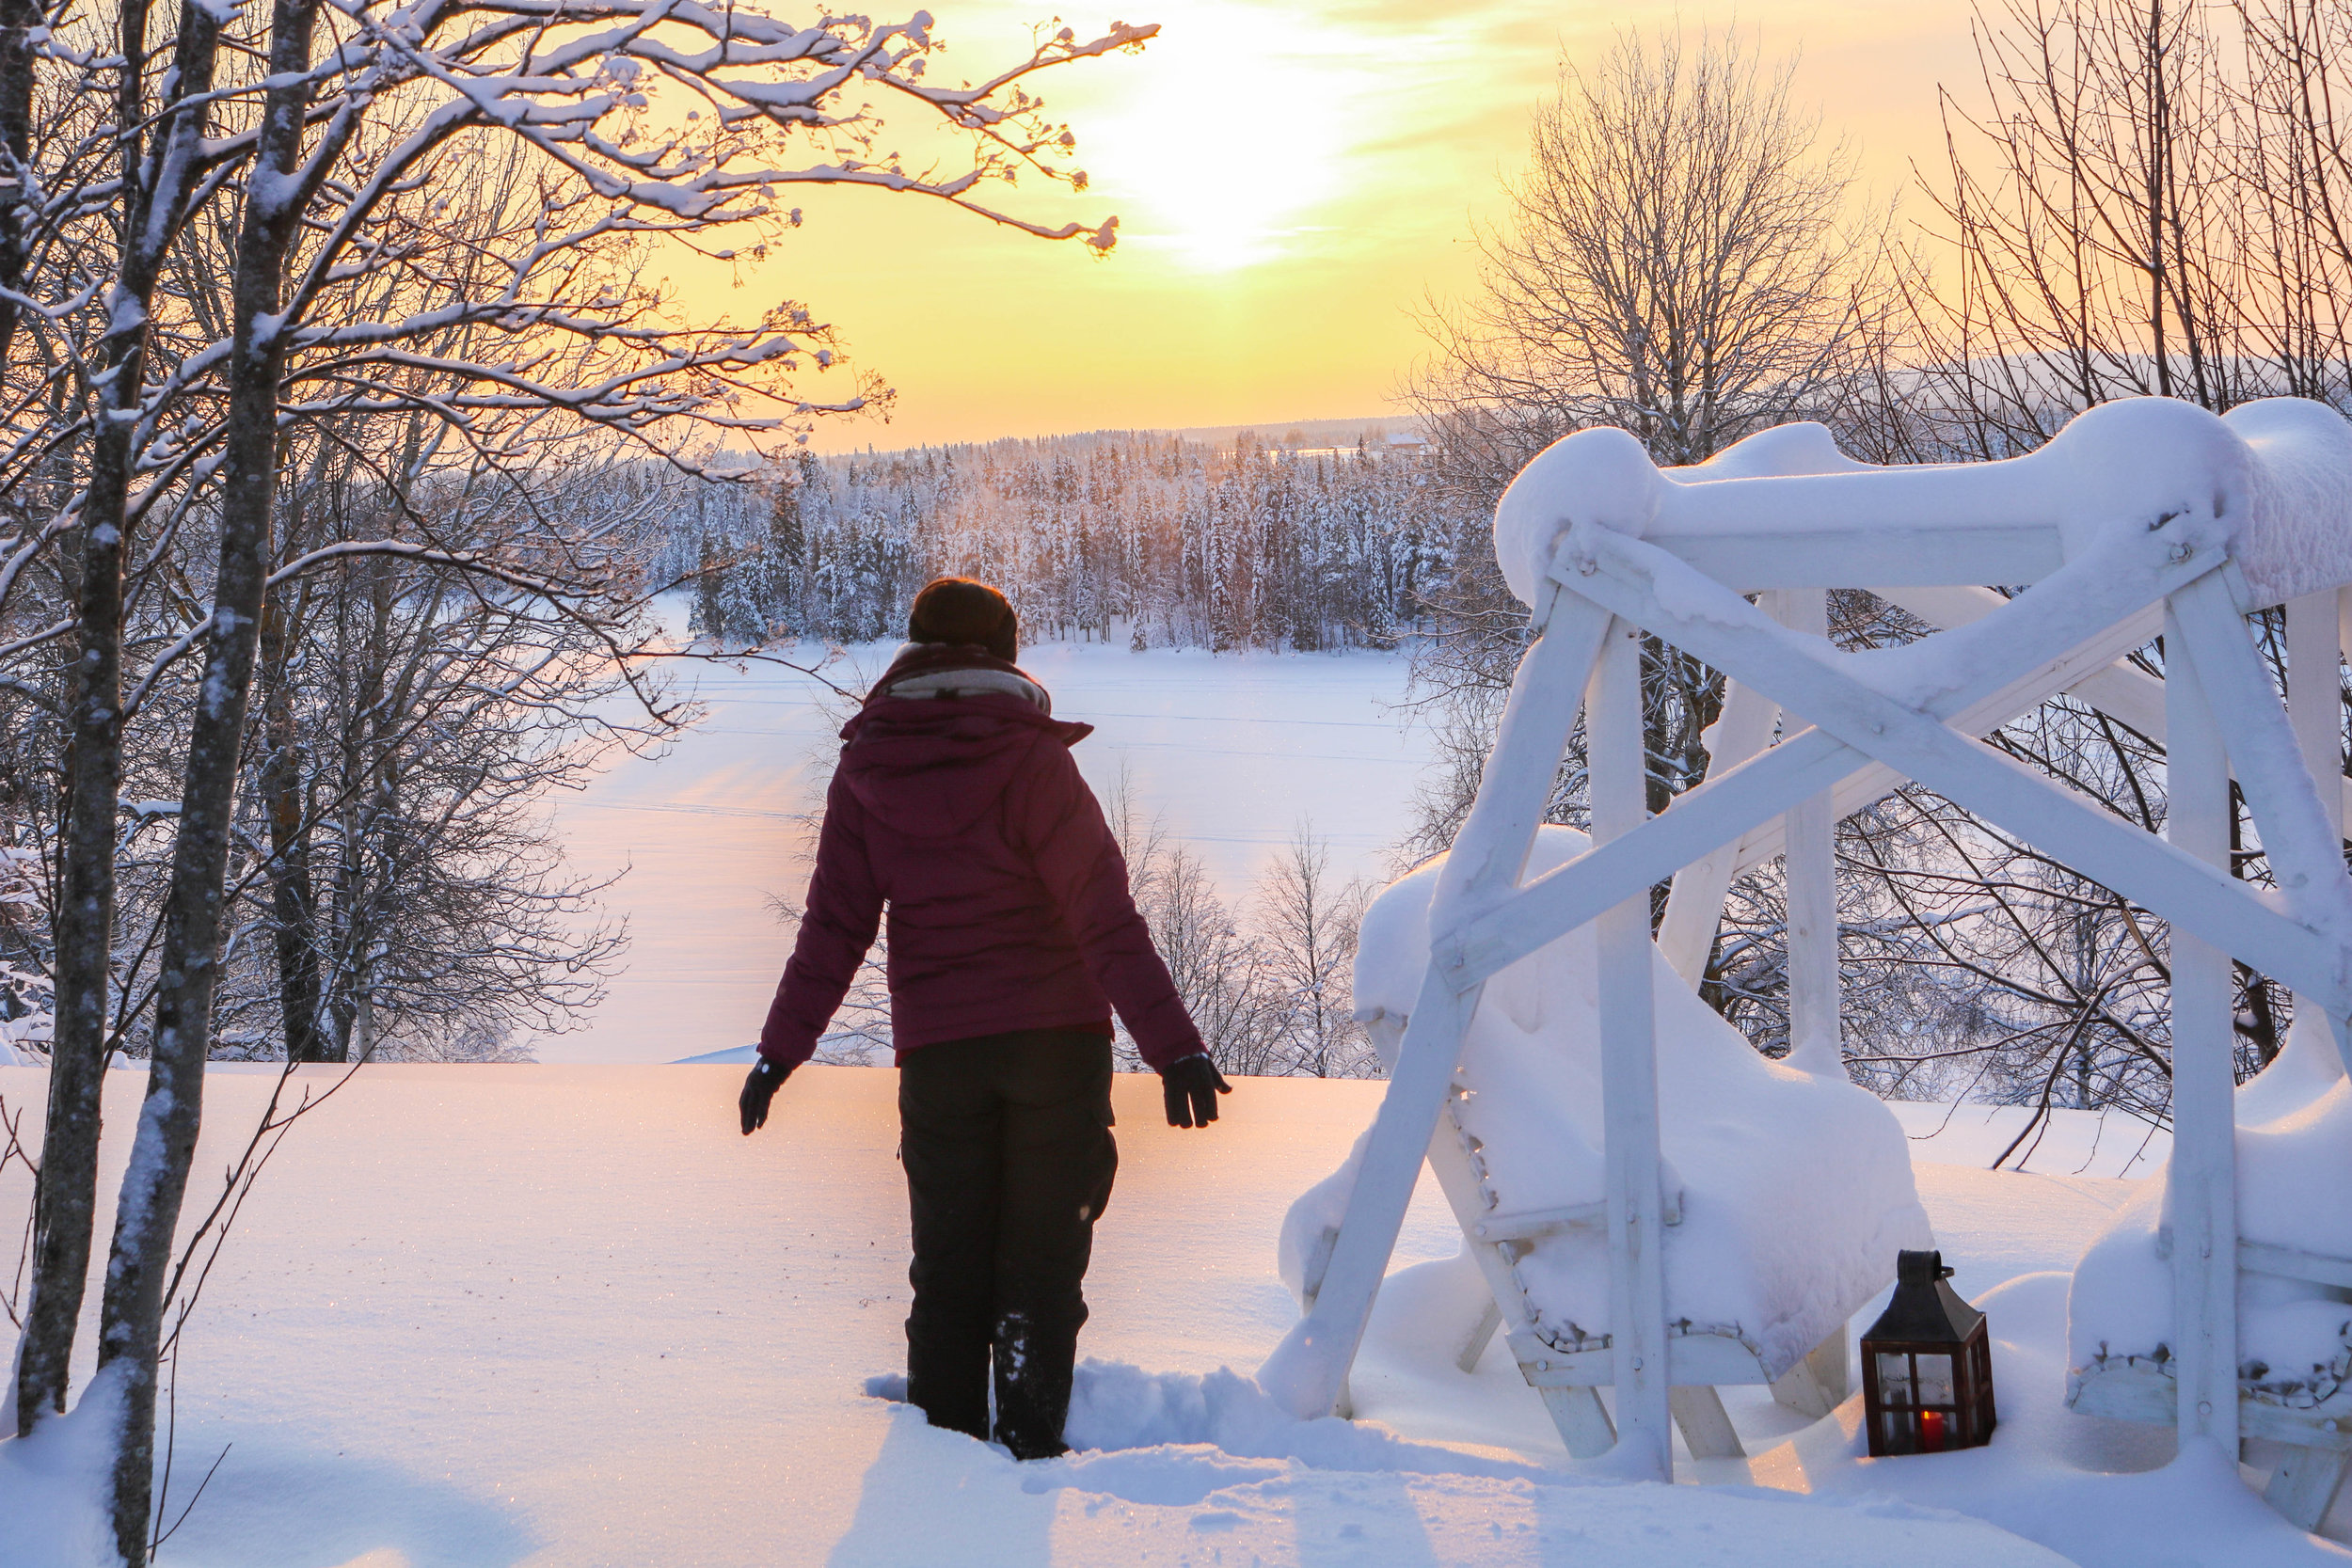 Granted, this was actually Lapland in -23 degrees - not something you'd usually encounter in Norwegian coastal cities, but definitely something you have to expect when heading inland/up the mountains!